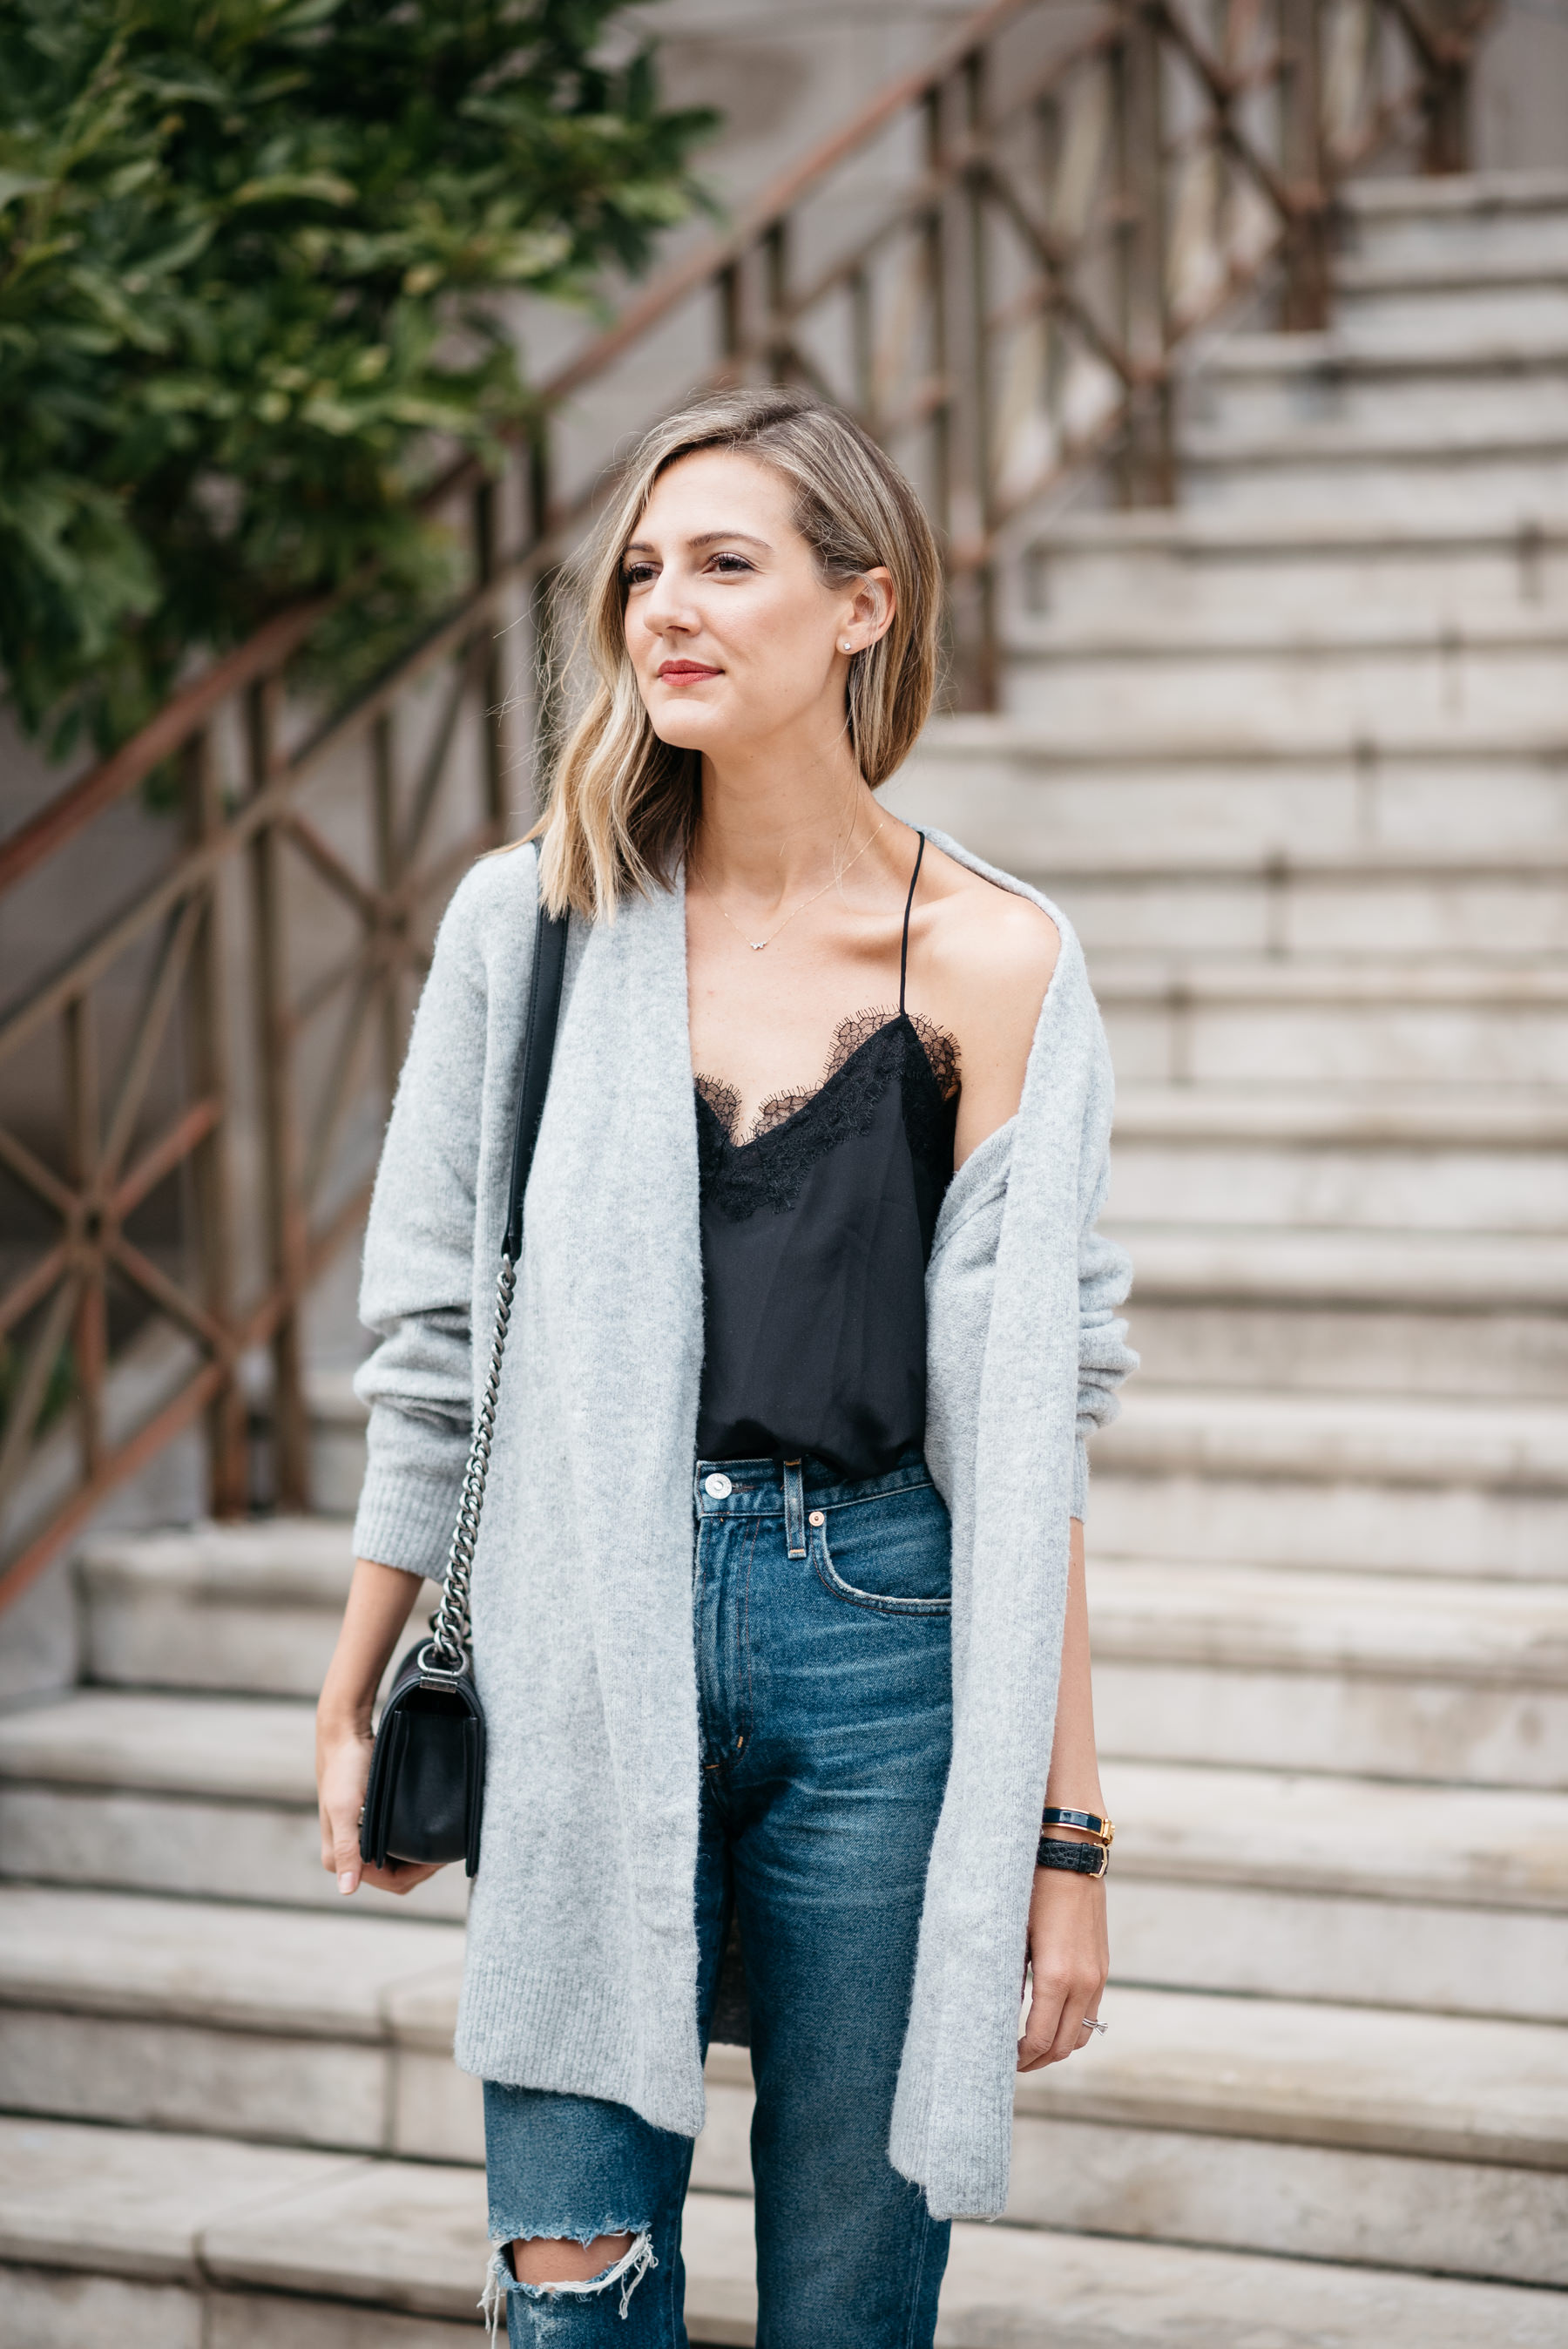 cc34cd7f4c3 how to wear a boyfriend cardigan with a sexy lace cami for fall